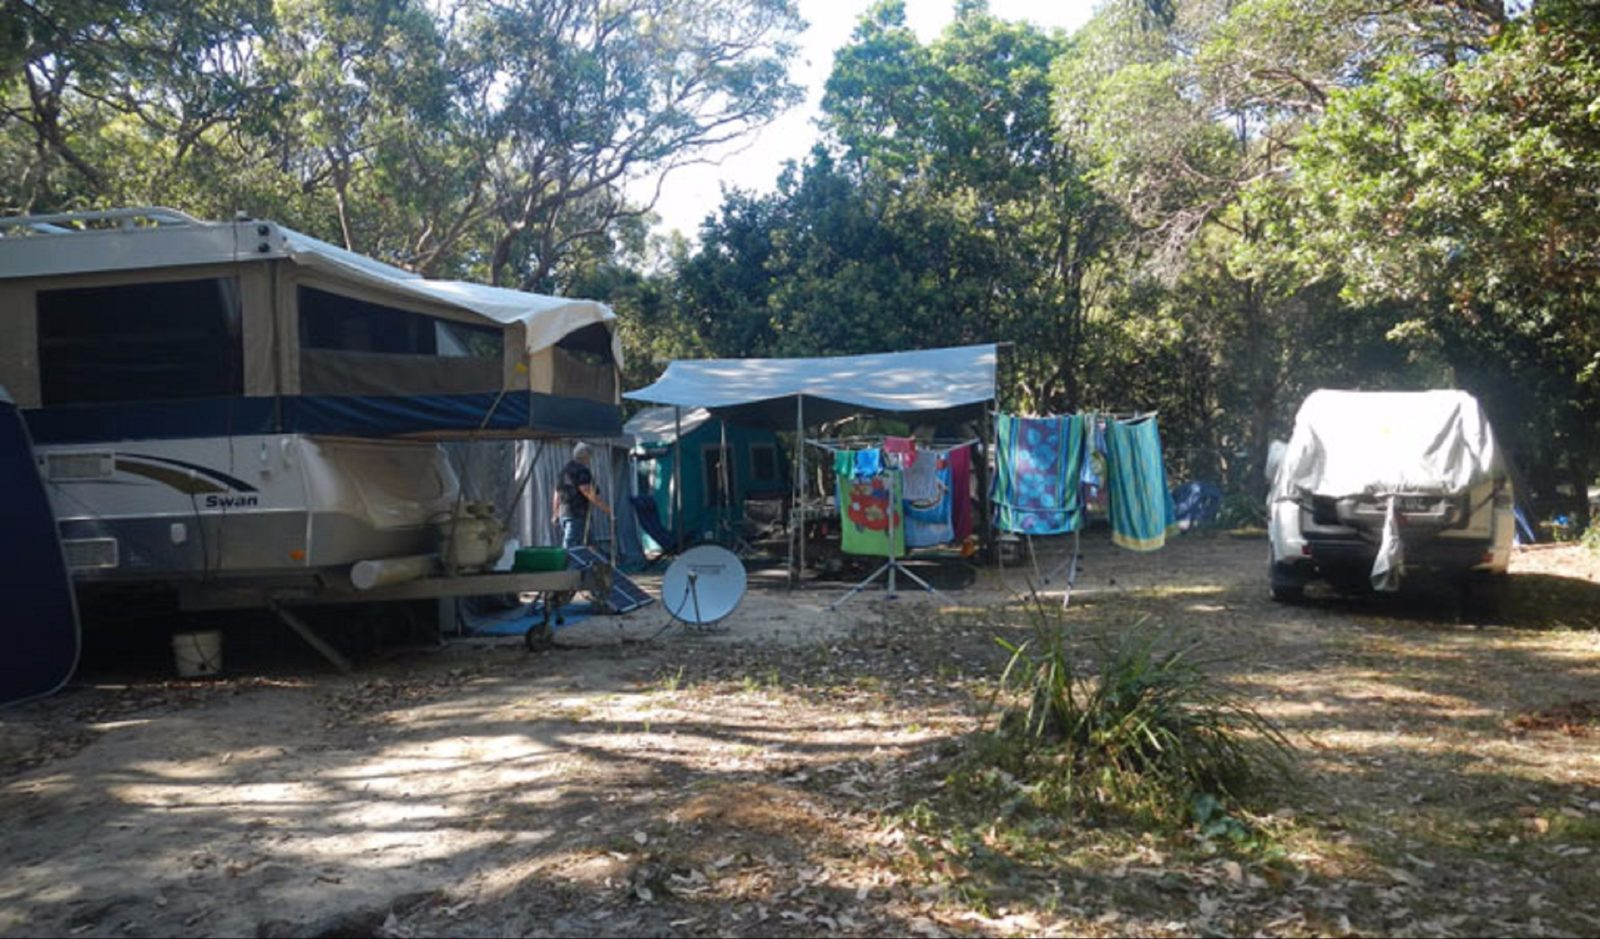 Caravans in Smoky Cape Campground. Photo: Debby McGerty